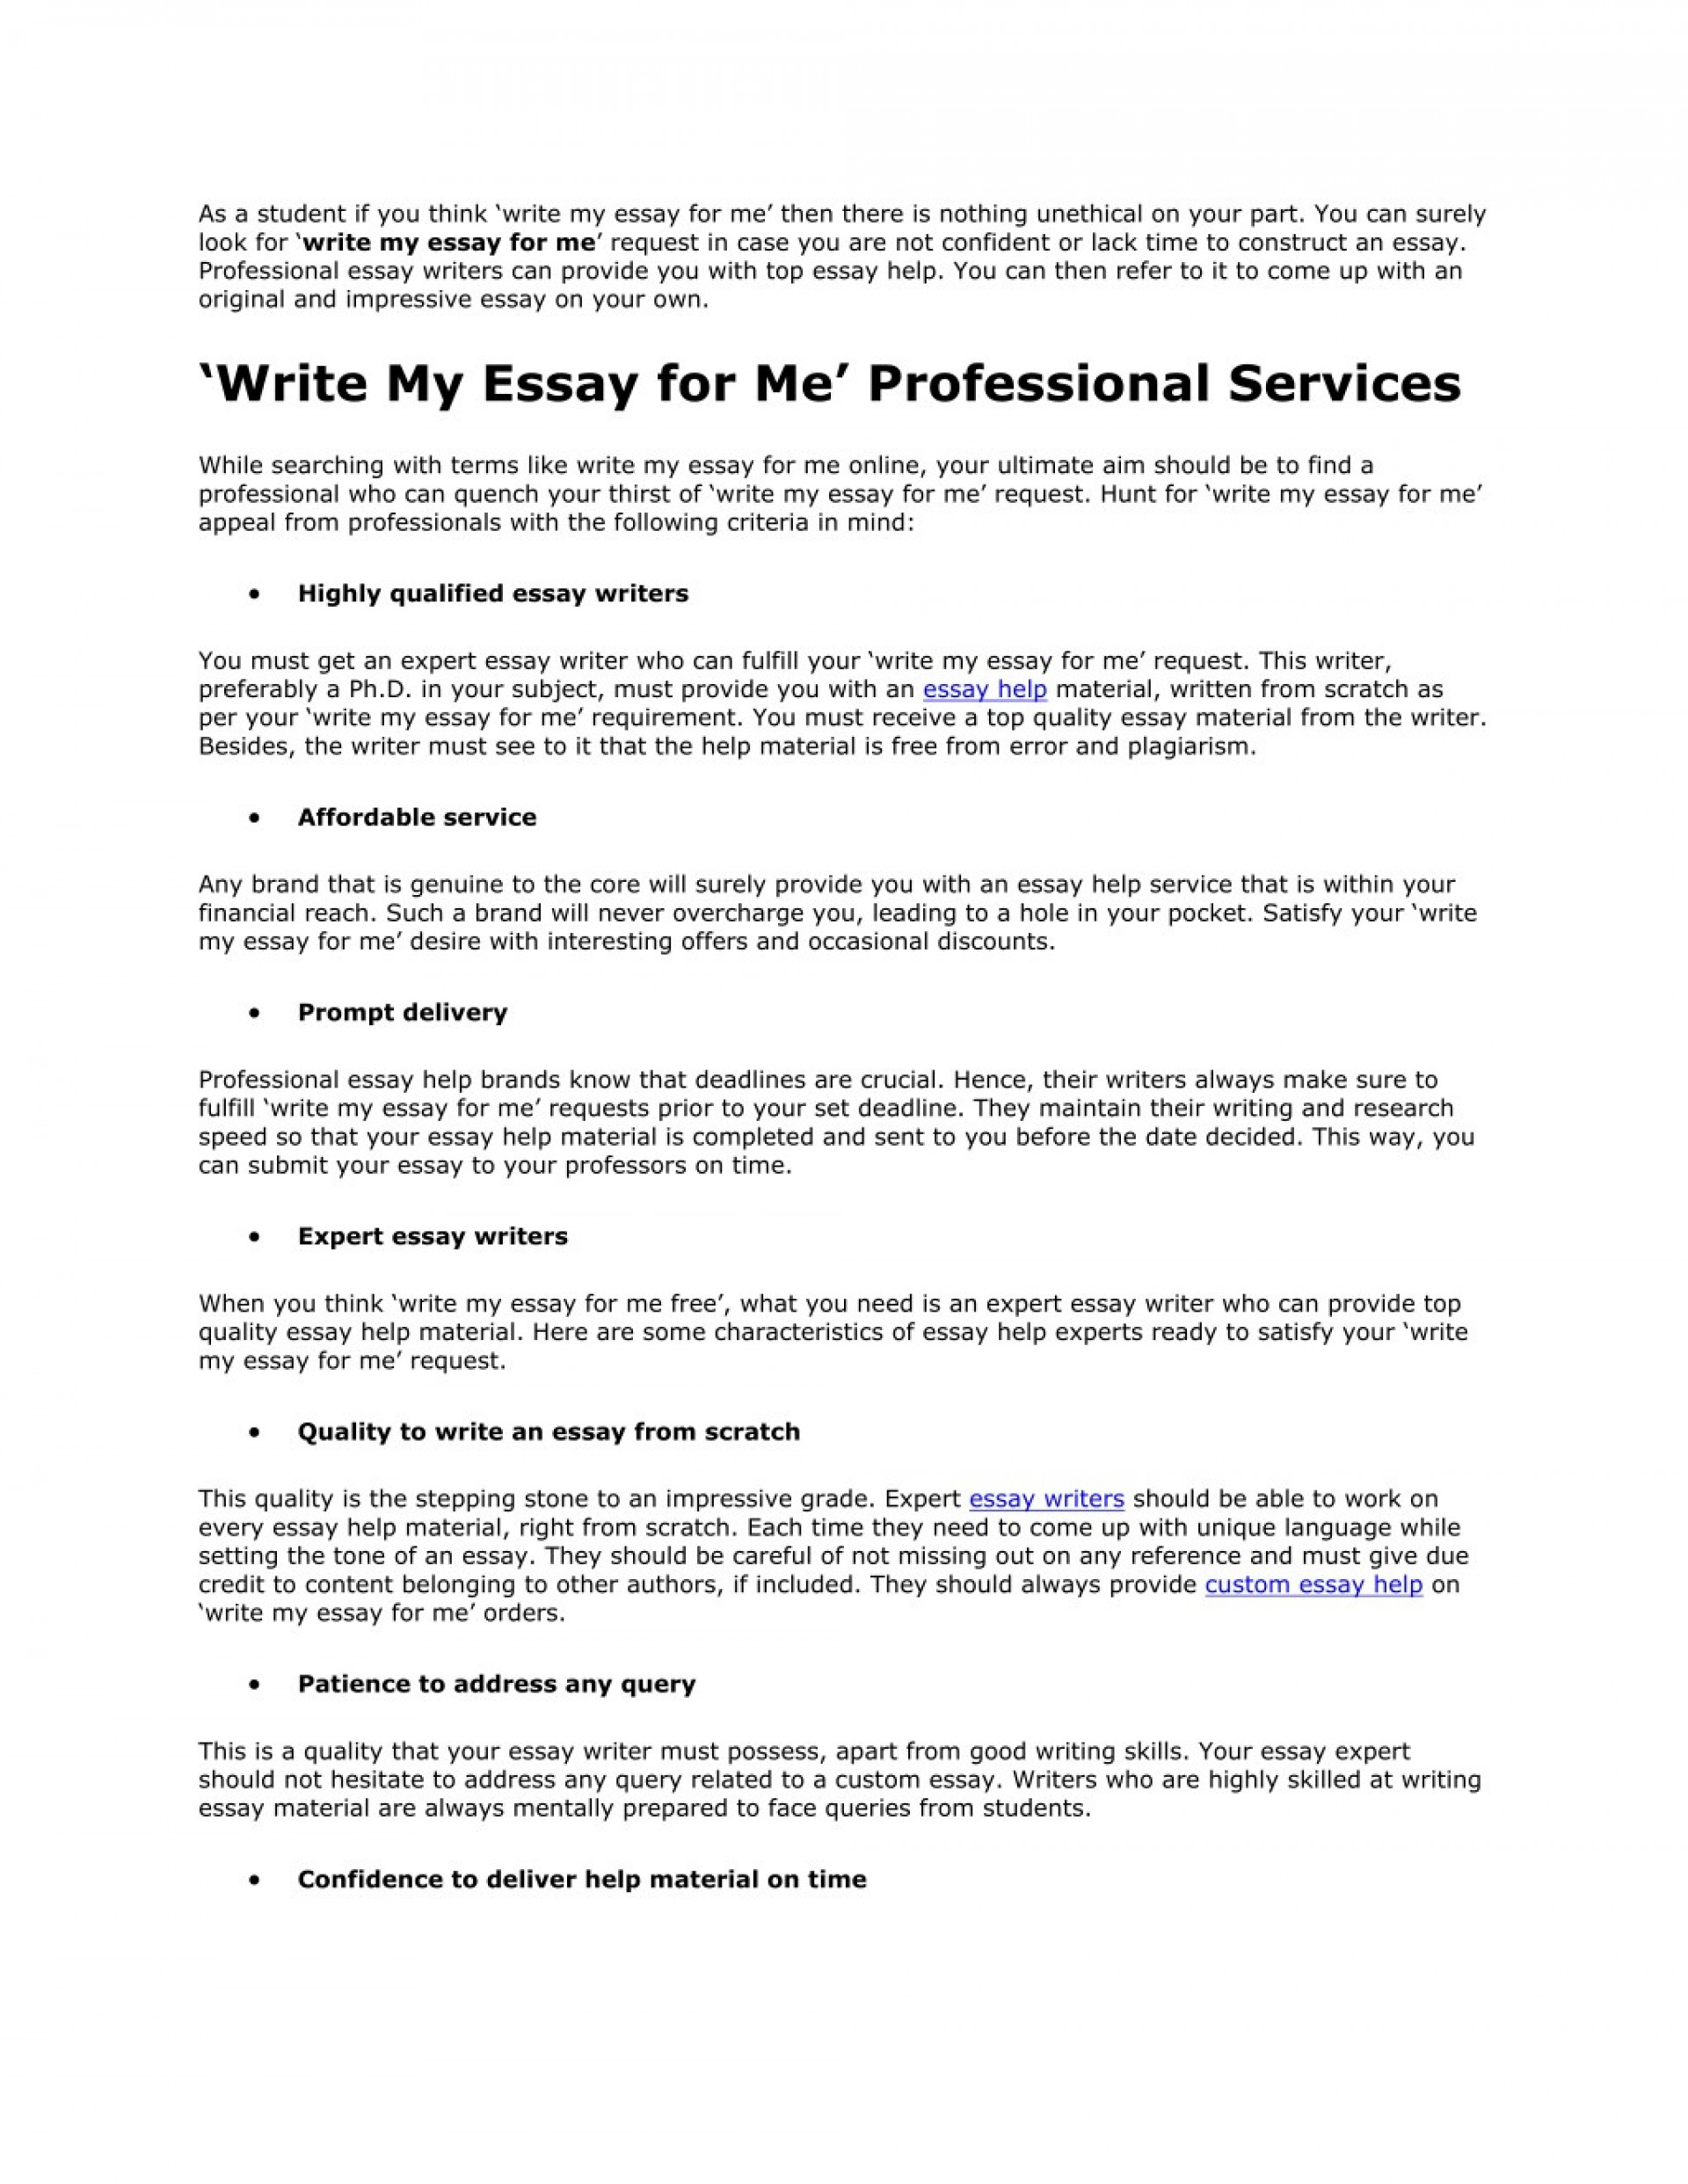 017 Write My Essay For Me Example As Student If You Think Surprising Please Generator Free Online 1920